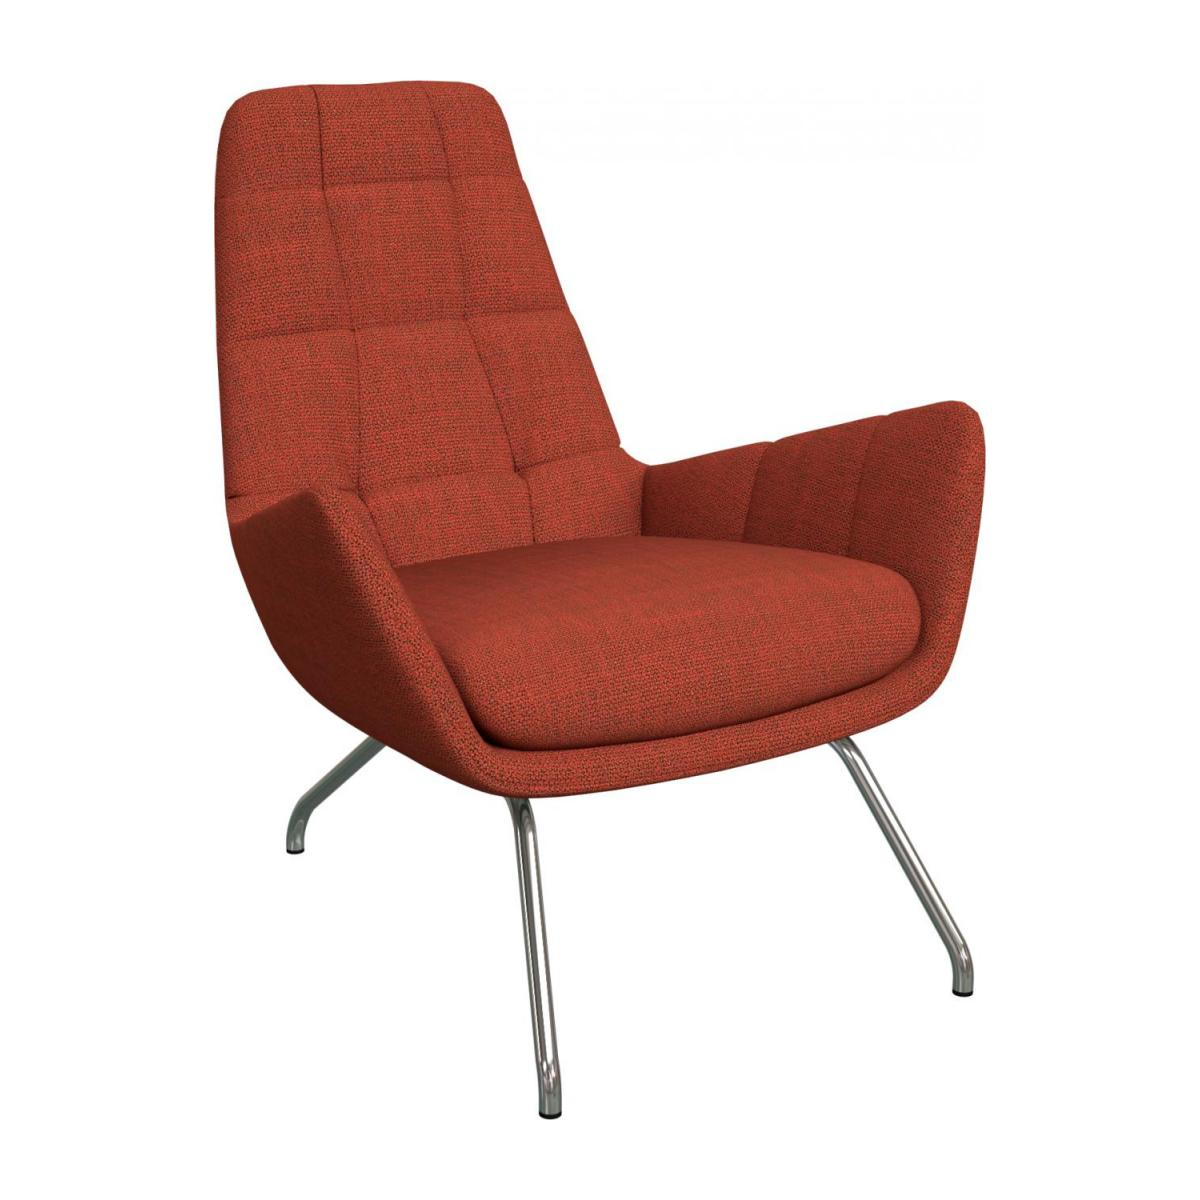 Armchair in Fasoli fabric, warm red rock with chromed metal legs n°1